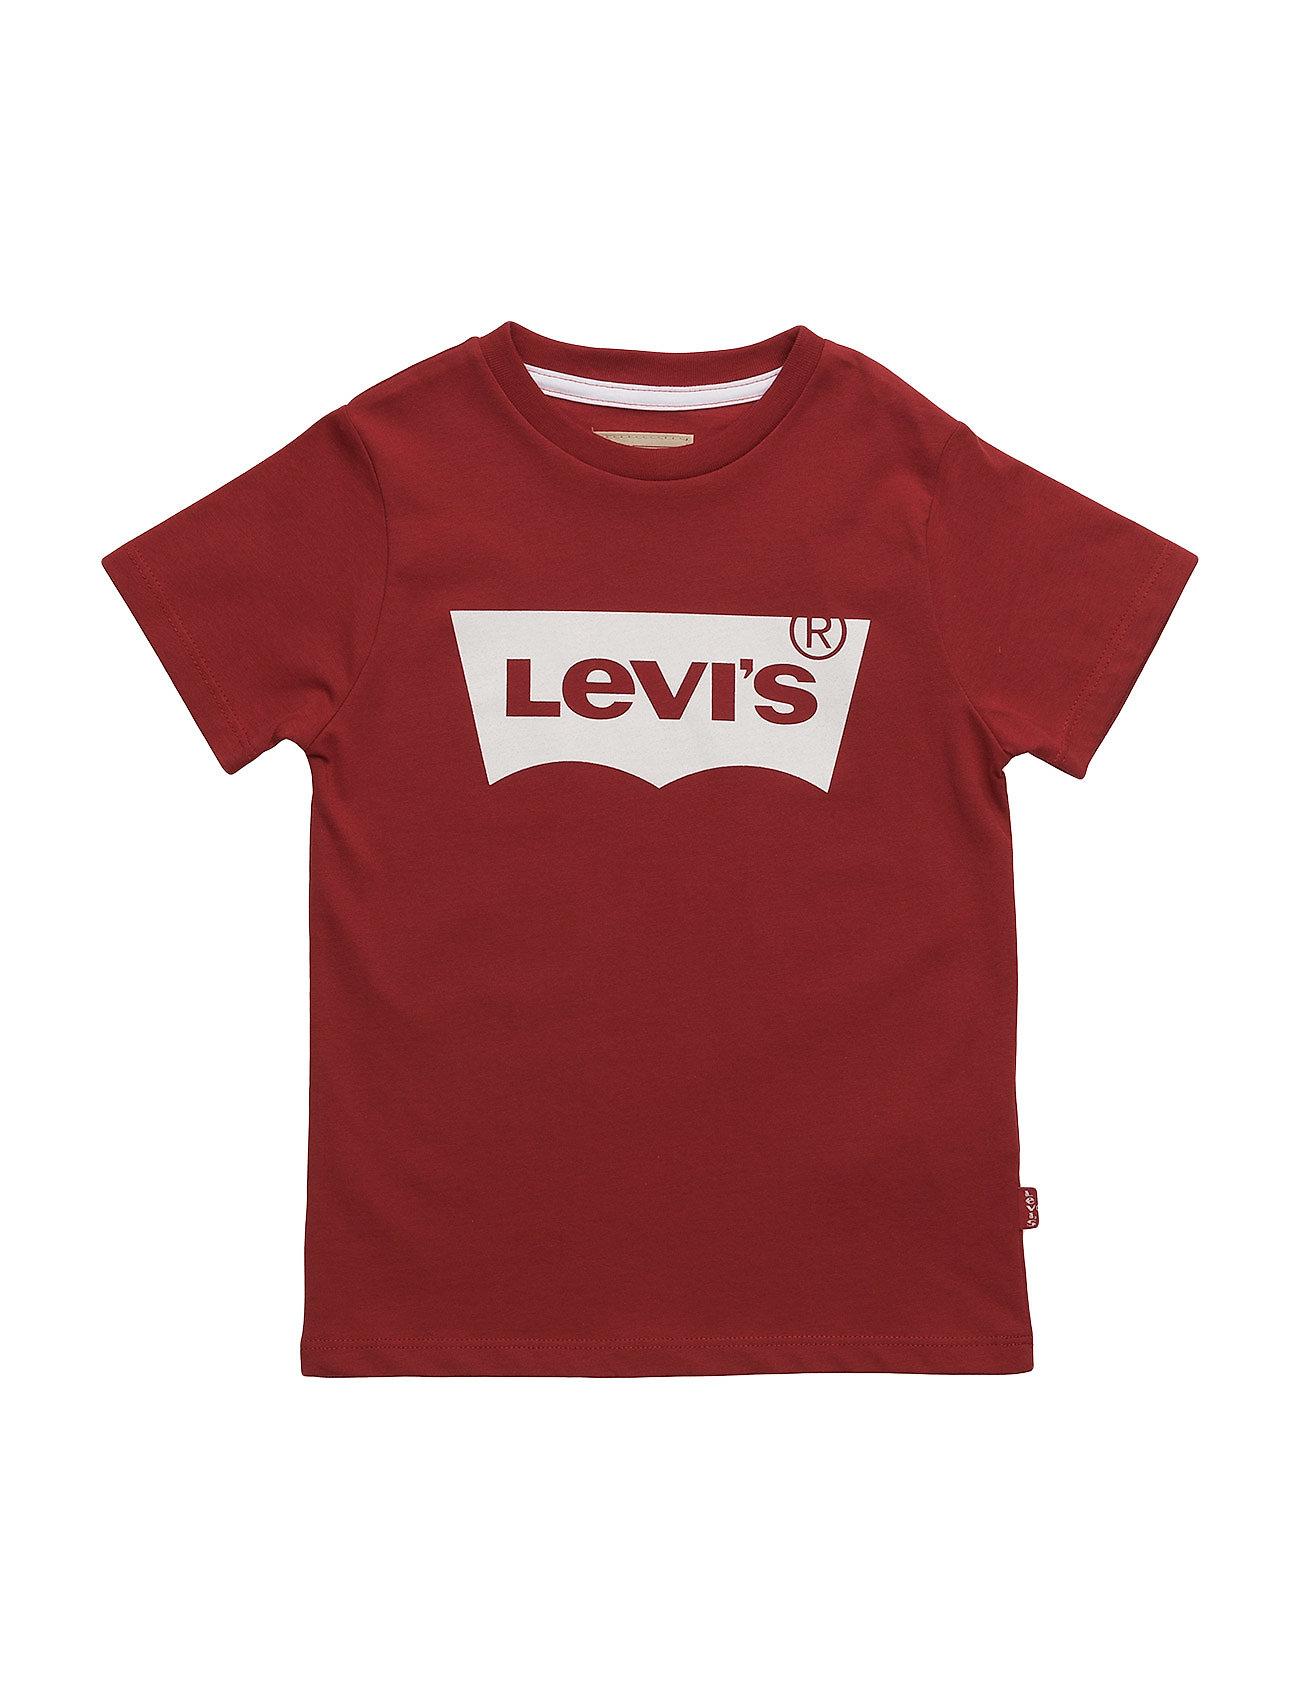 Levi's SS-TEE NOS - RED